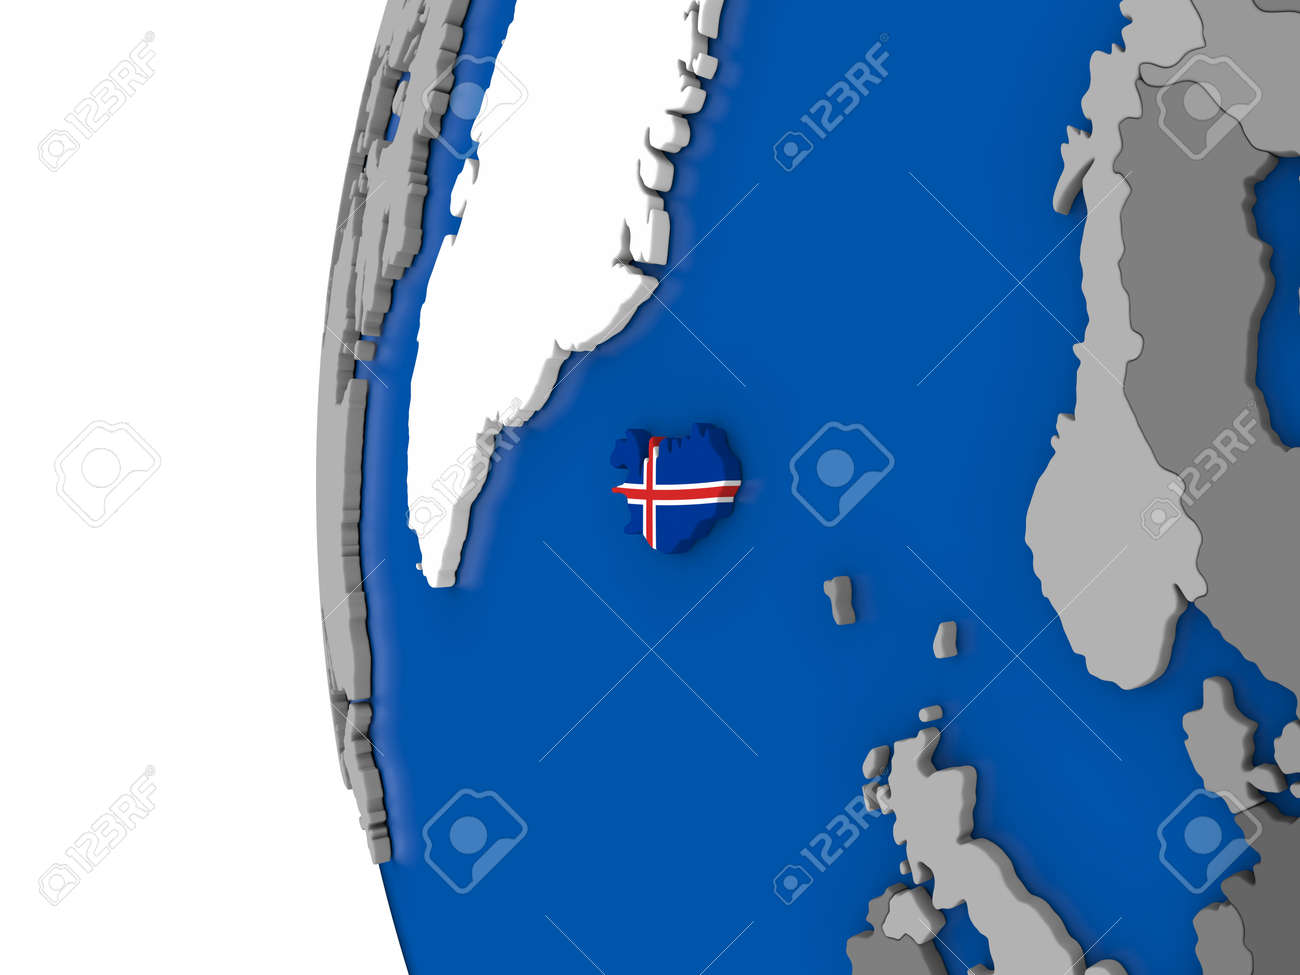 Map of iceland with its flag on globe 3d illustration stock photo illustration map of iceland with its flag on globe 3d illustration gumiabroncs